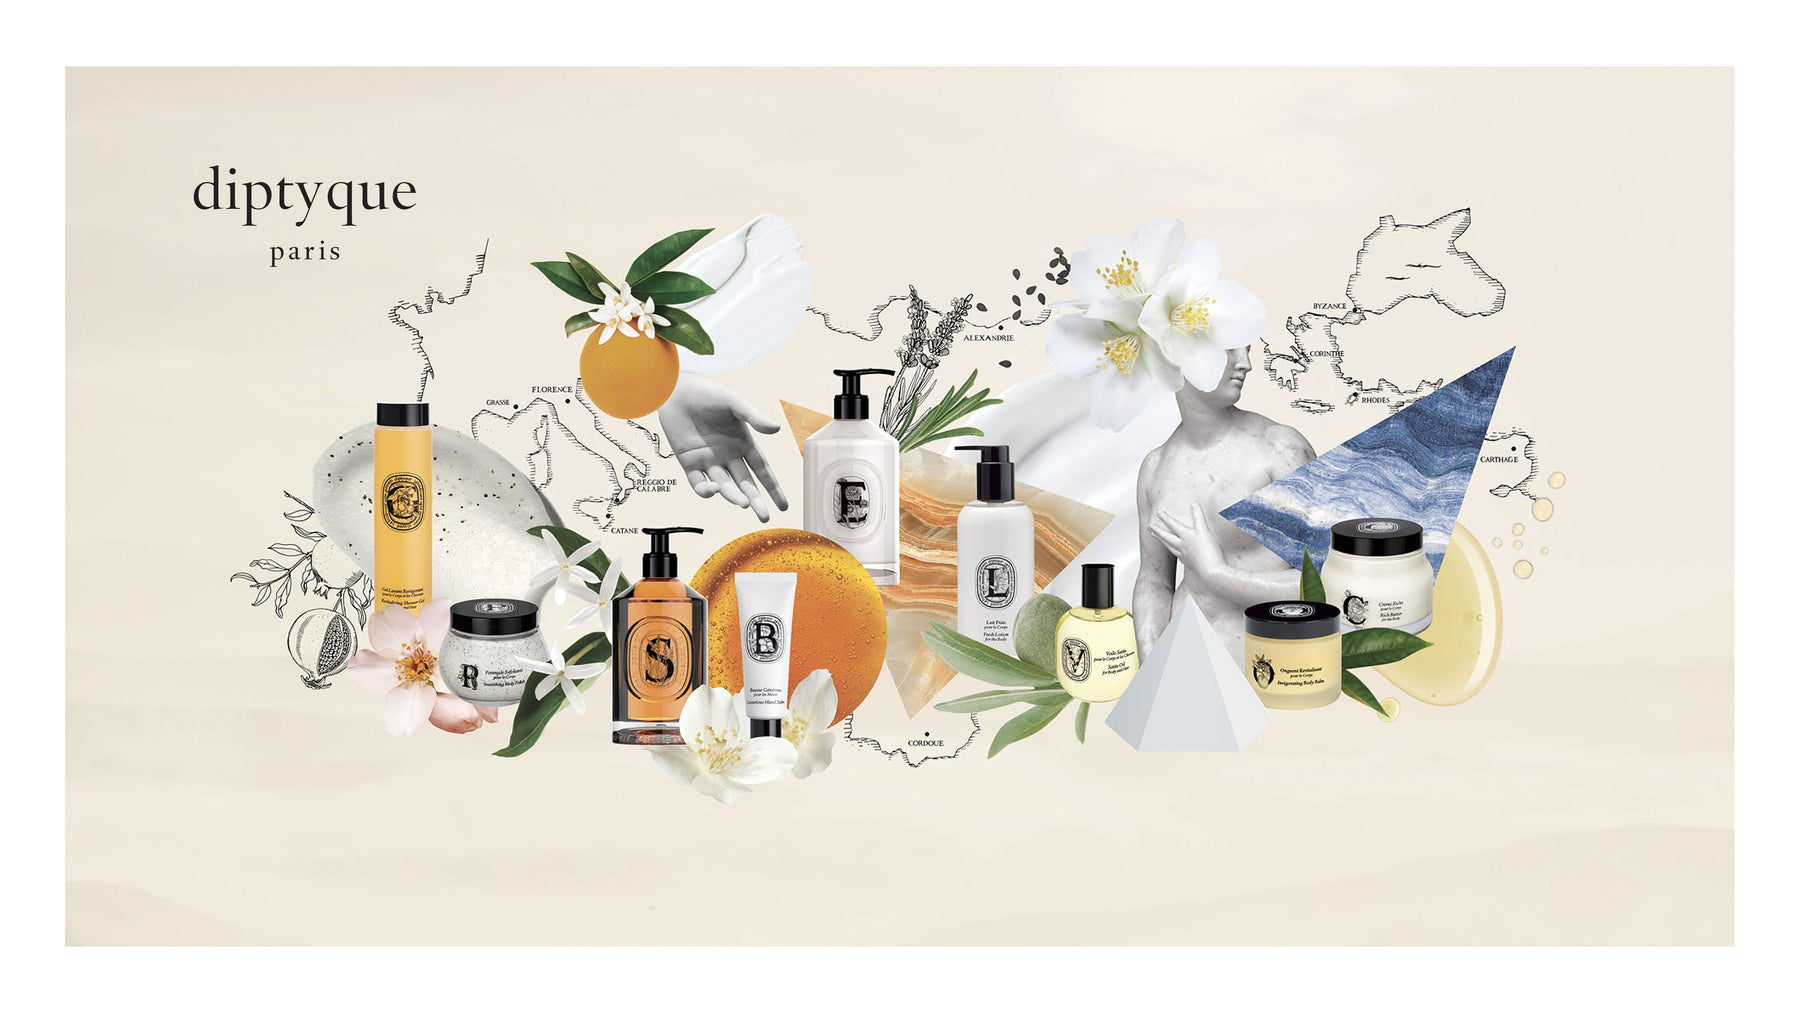 A selection of Diptyque Paris body care products.